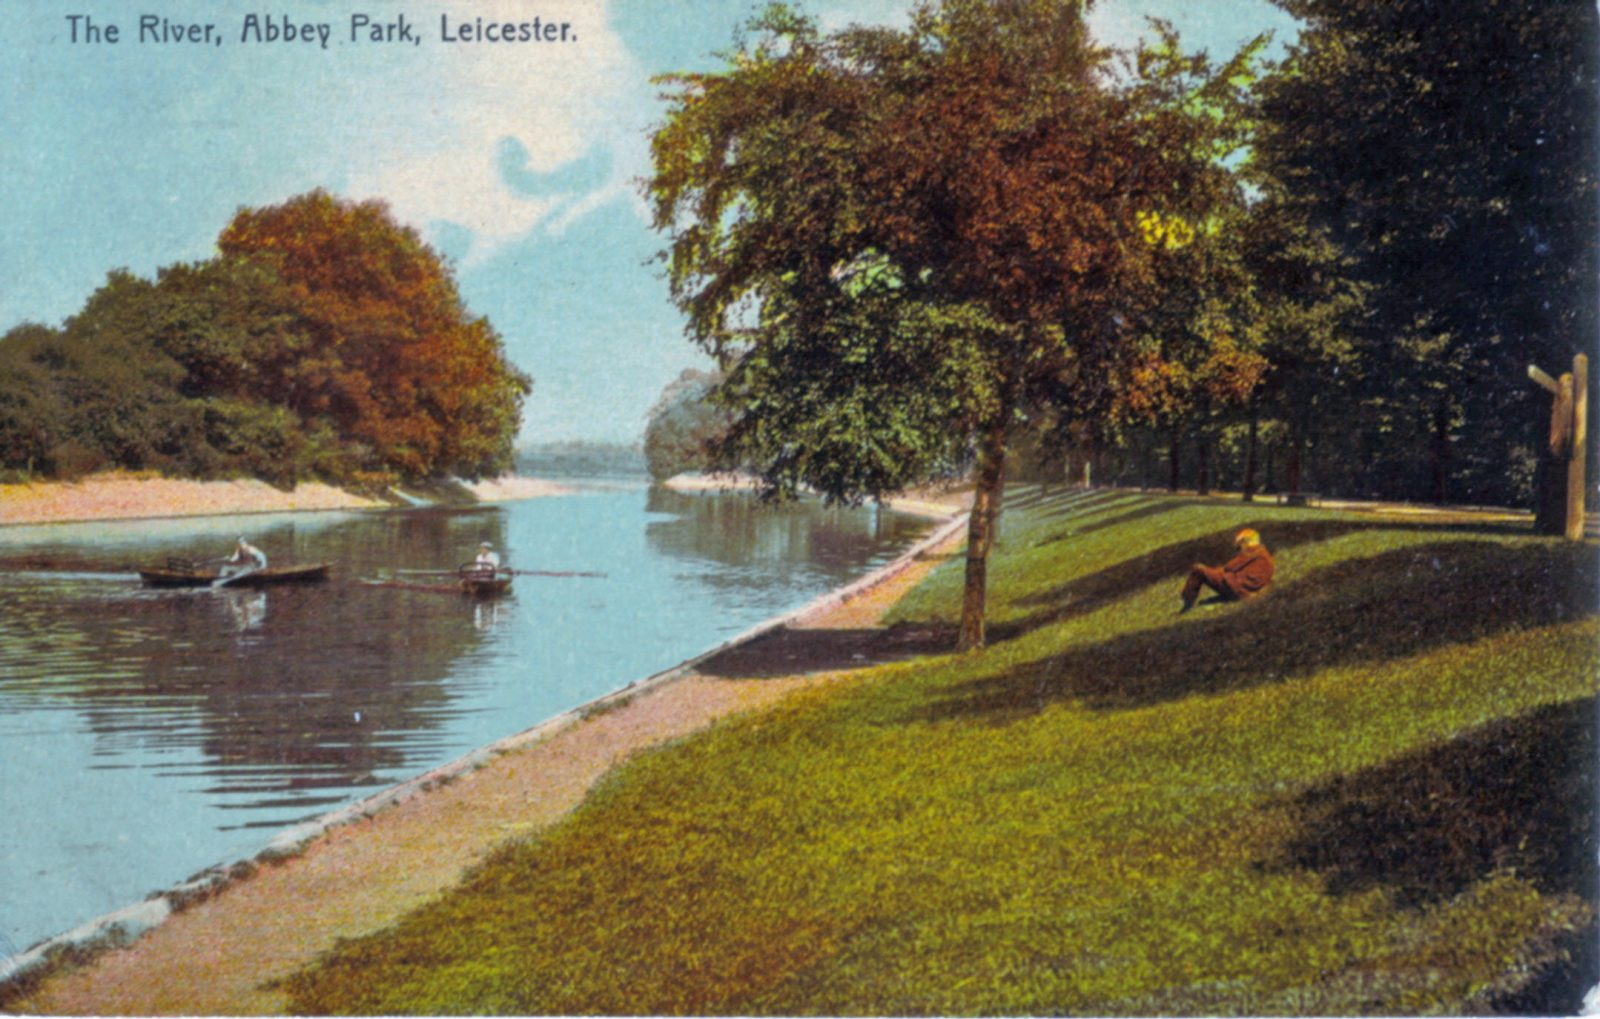 Abbey Park, Leicester. 1921-1940: The River Soar with boats. Franked 1911 (File:1043)